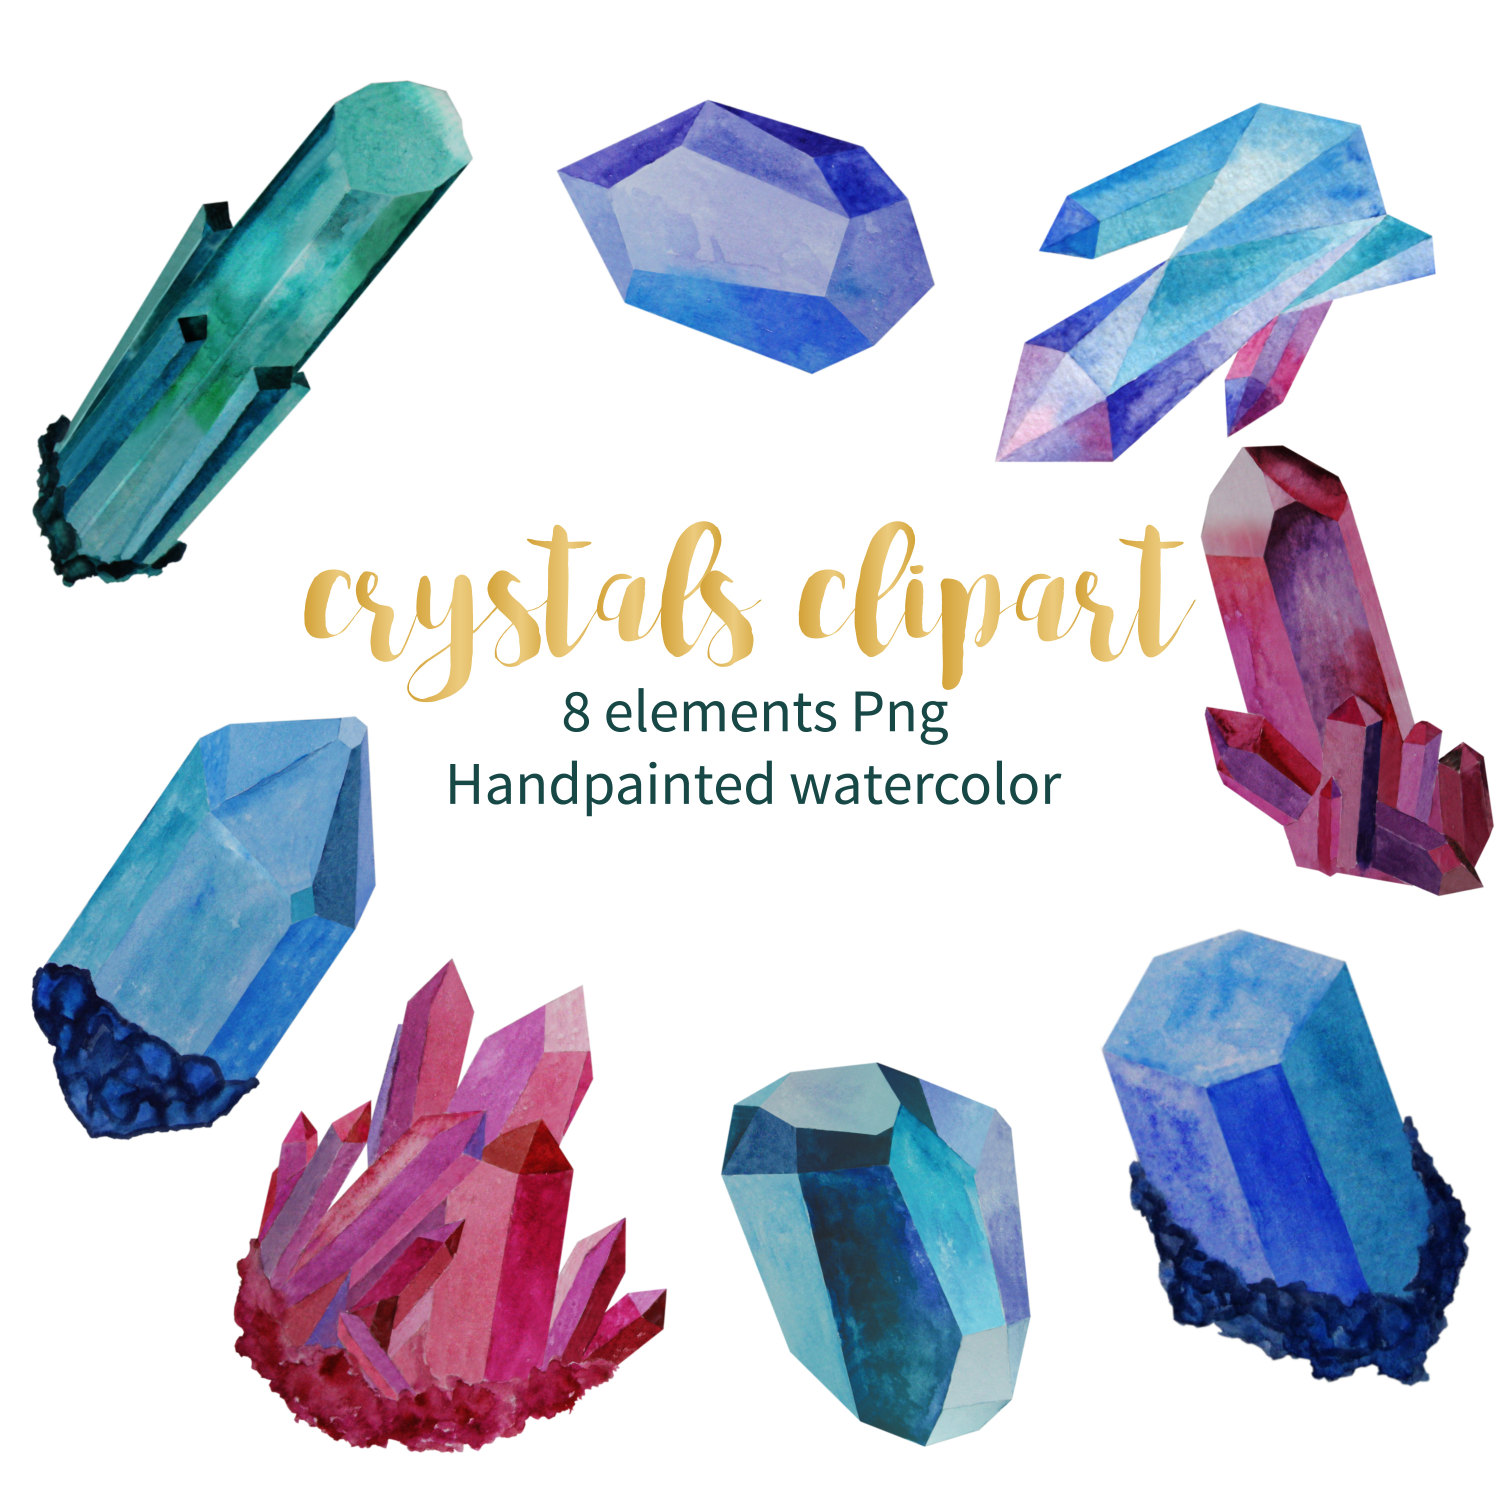 Emerald clipart quartz crystal Crystal ClipArt a Watercolor digital